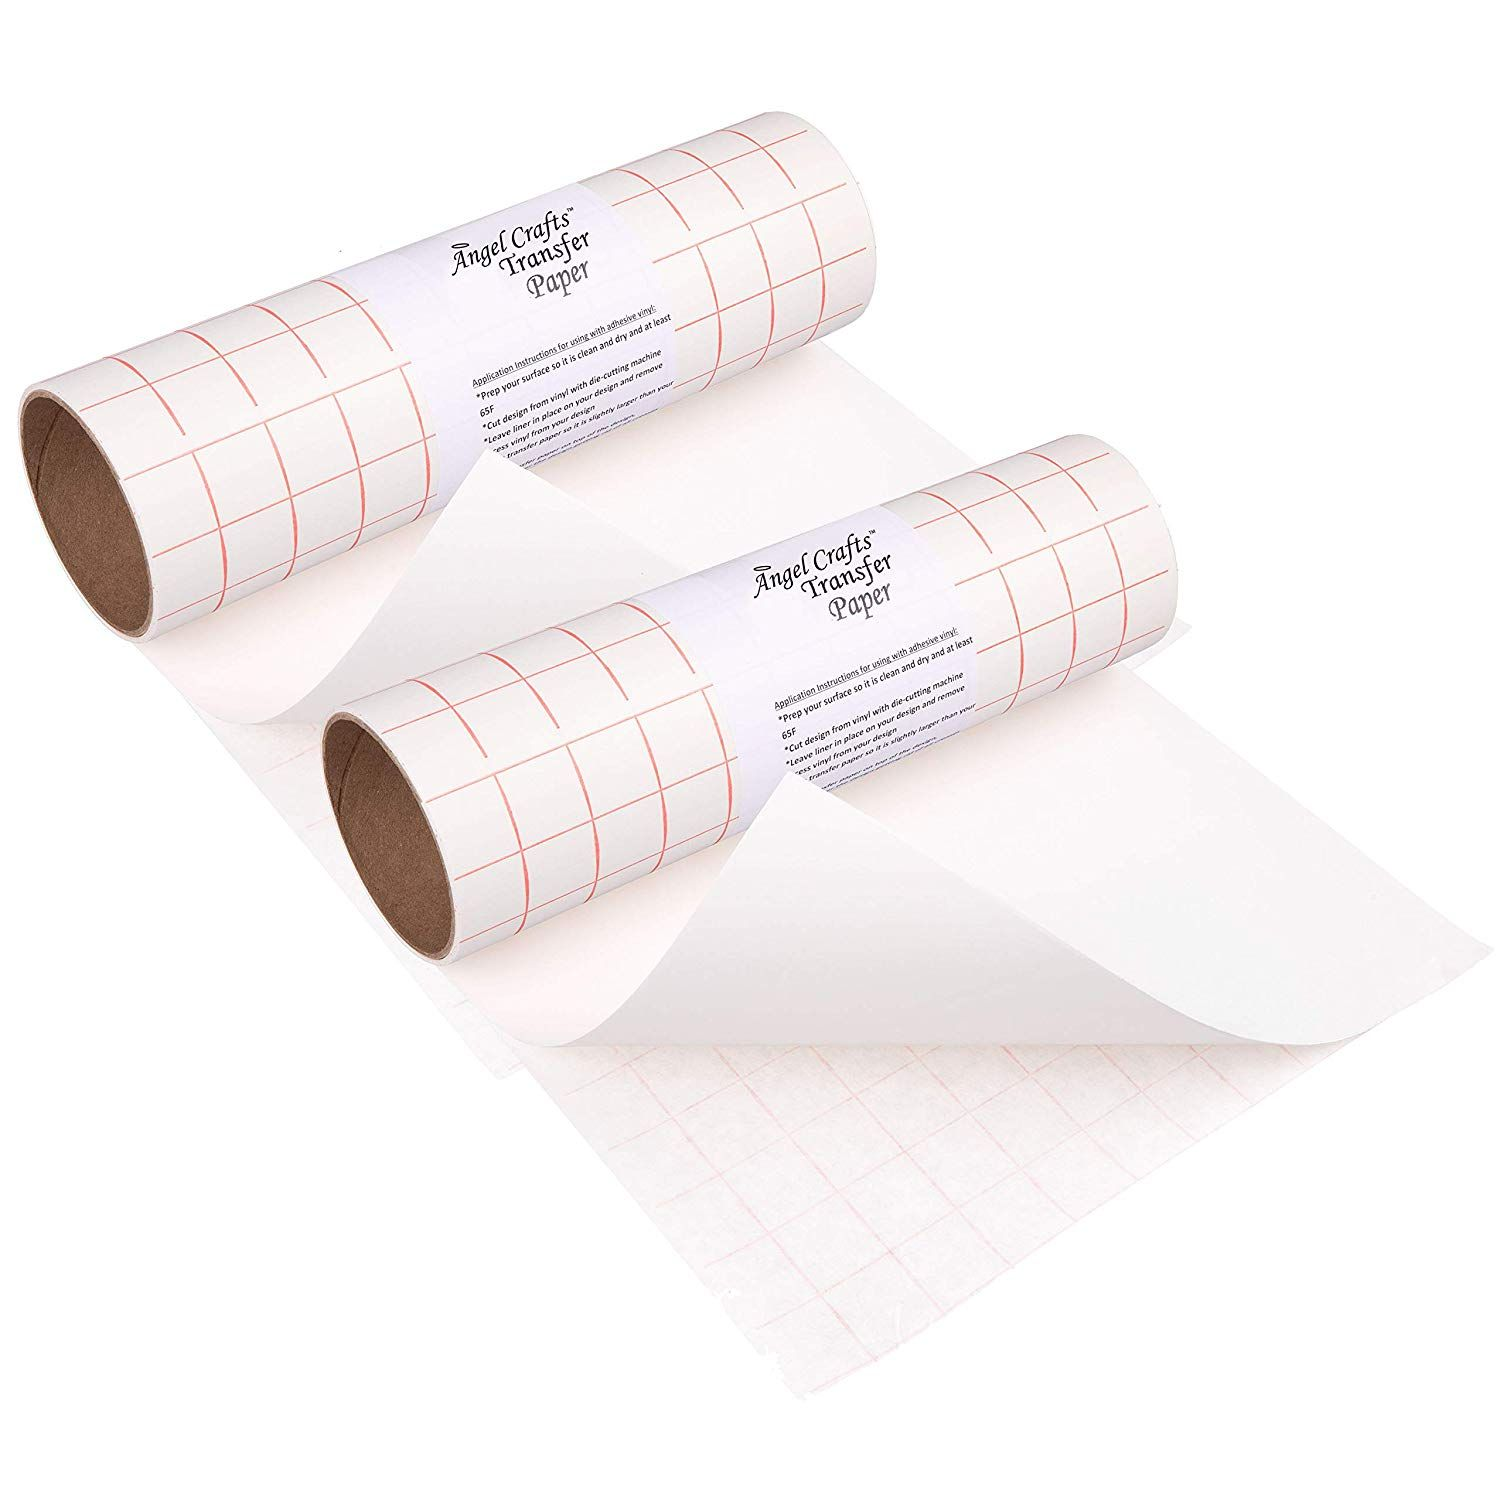 Angel Crafts Transfer Paper Tape 2 Pack Craft Transfer Tape For Vinyl Application With Red Grid Lines Two Transfer Paper Paper Tape Transfer Tape For Vinyl